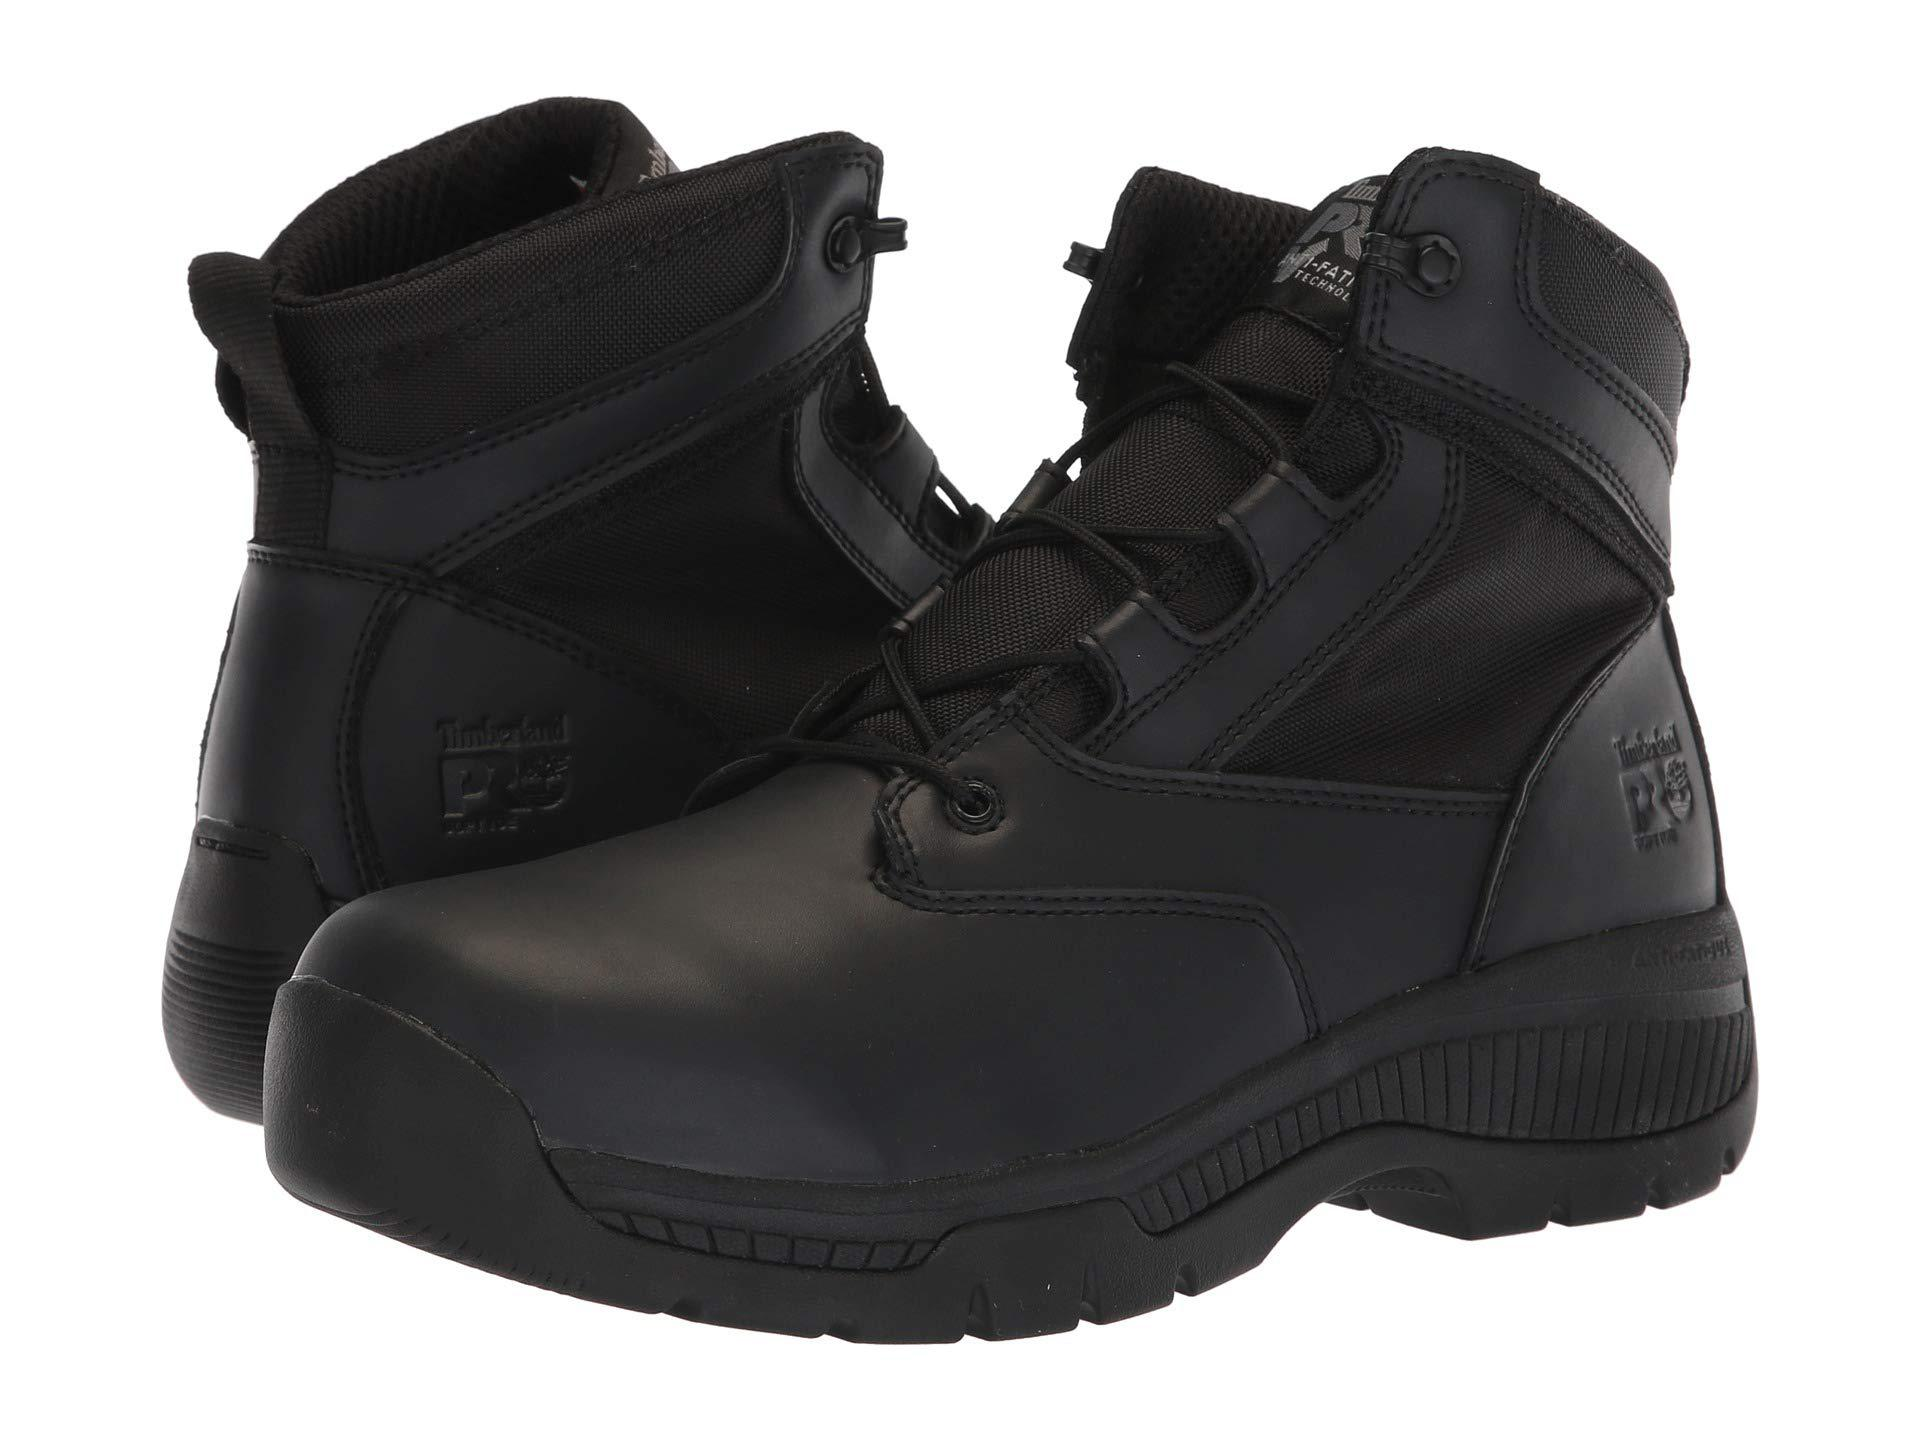 92129c37f43 Lyst - Timberland Valor Duty 6 Soft Toe (black) Men's Work Boots in ...